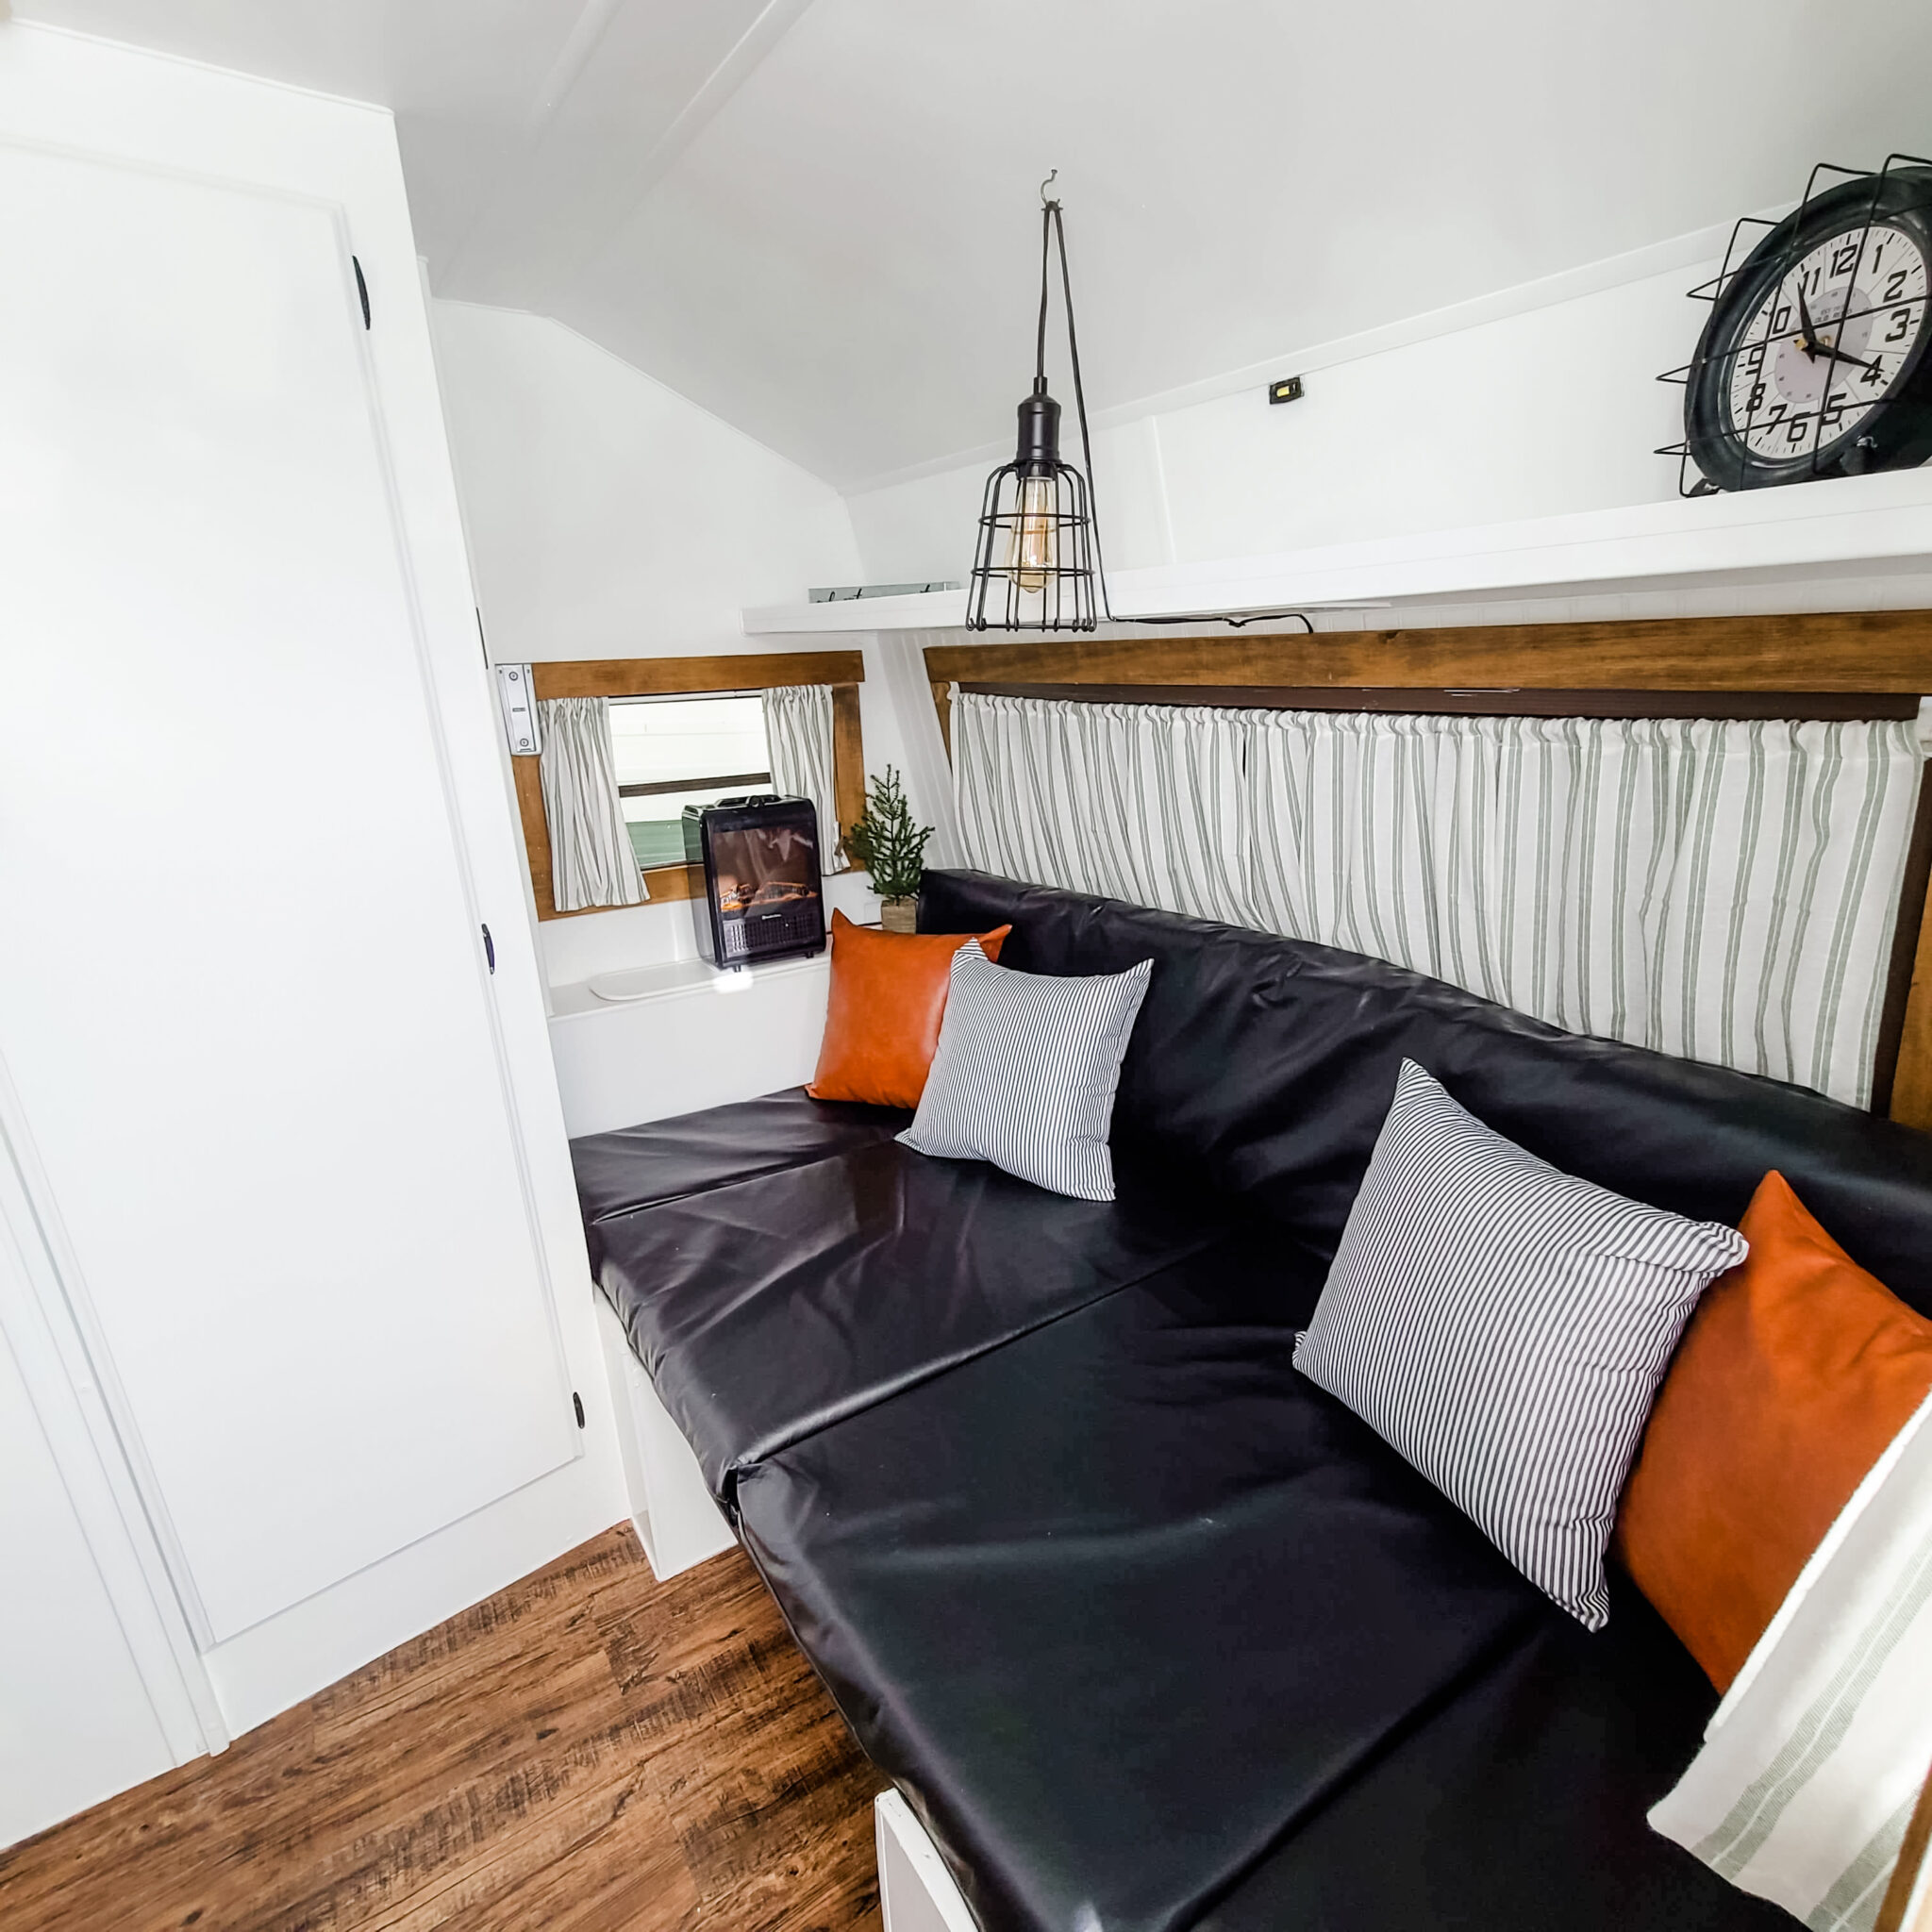 This Tiny Vintage Trailer was Transformed Into an Adorable Home on Wheels All Things with Purpose Sarah Lemp 31